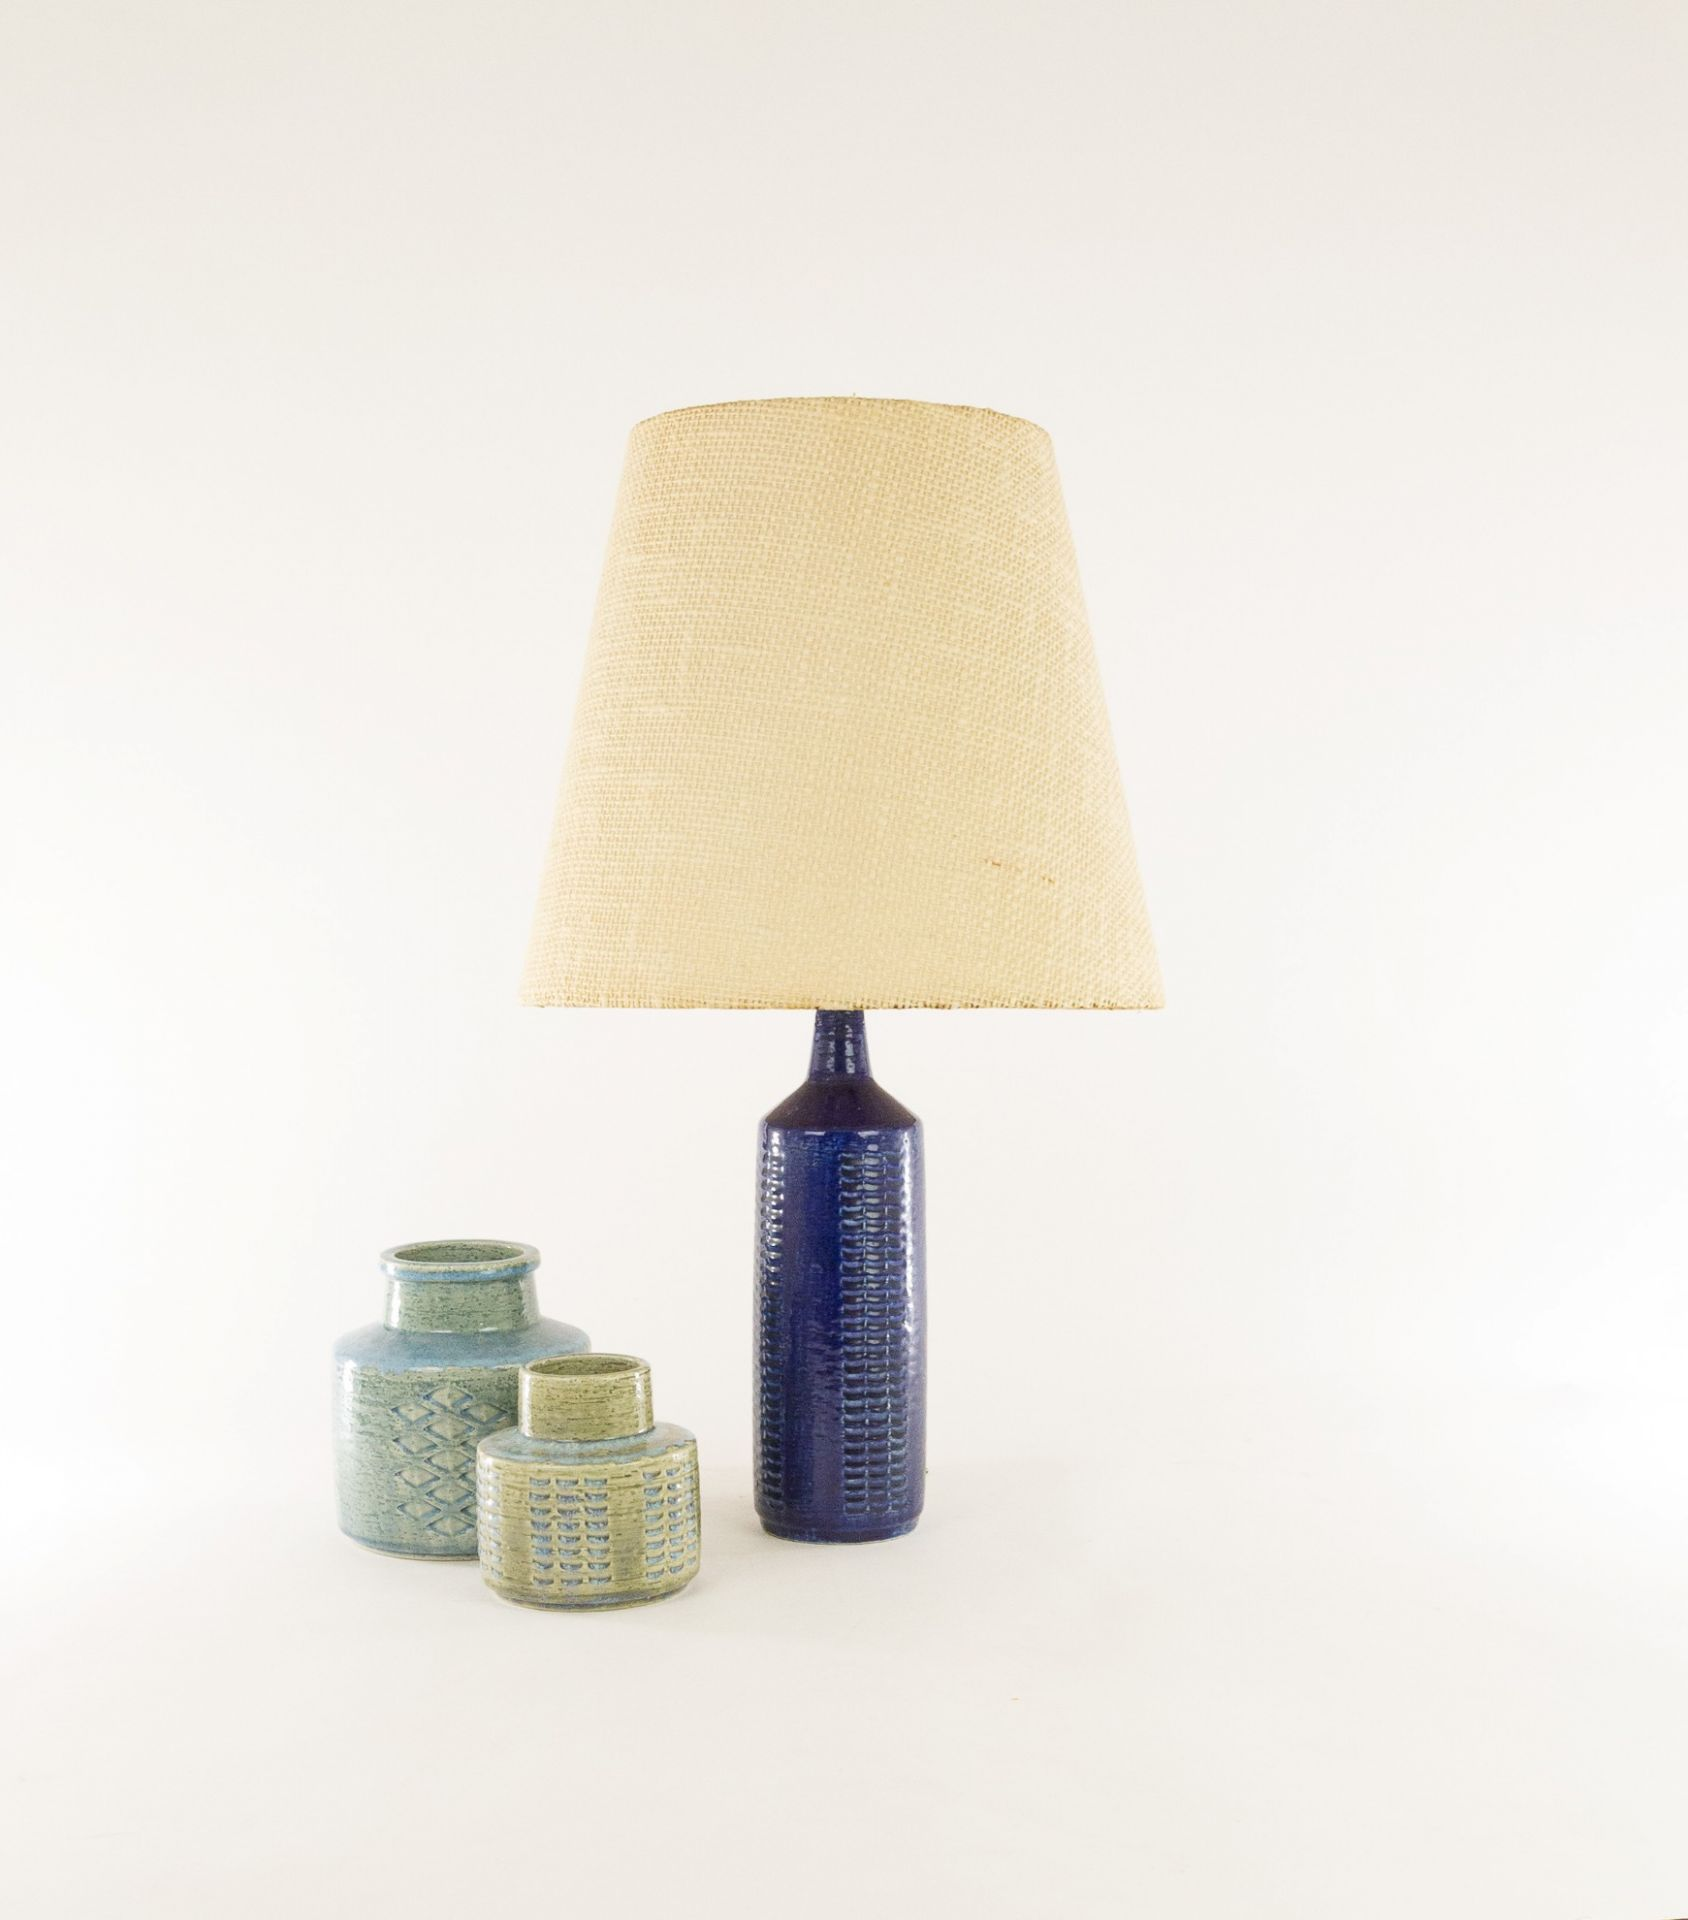 Collection Palshus table lamps model DL/27 by Annelise and Per Linnemann-Schmidt